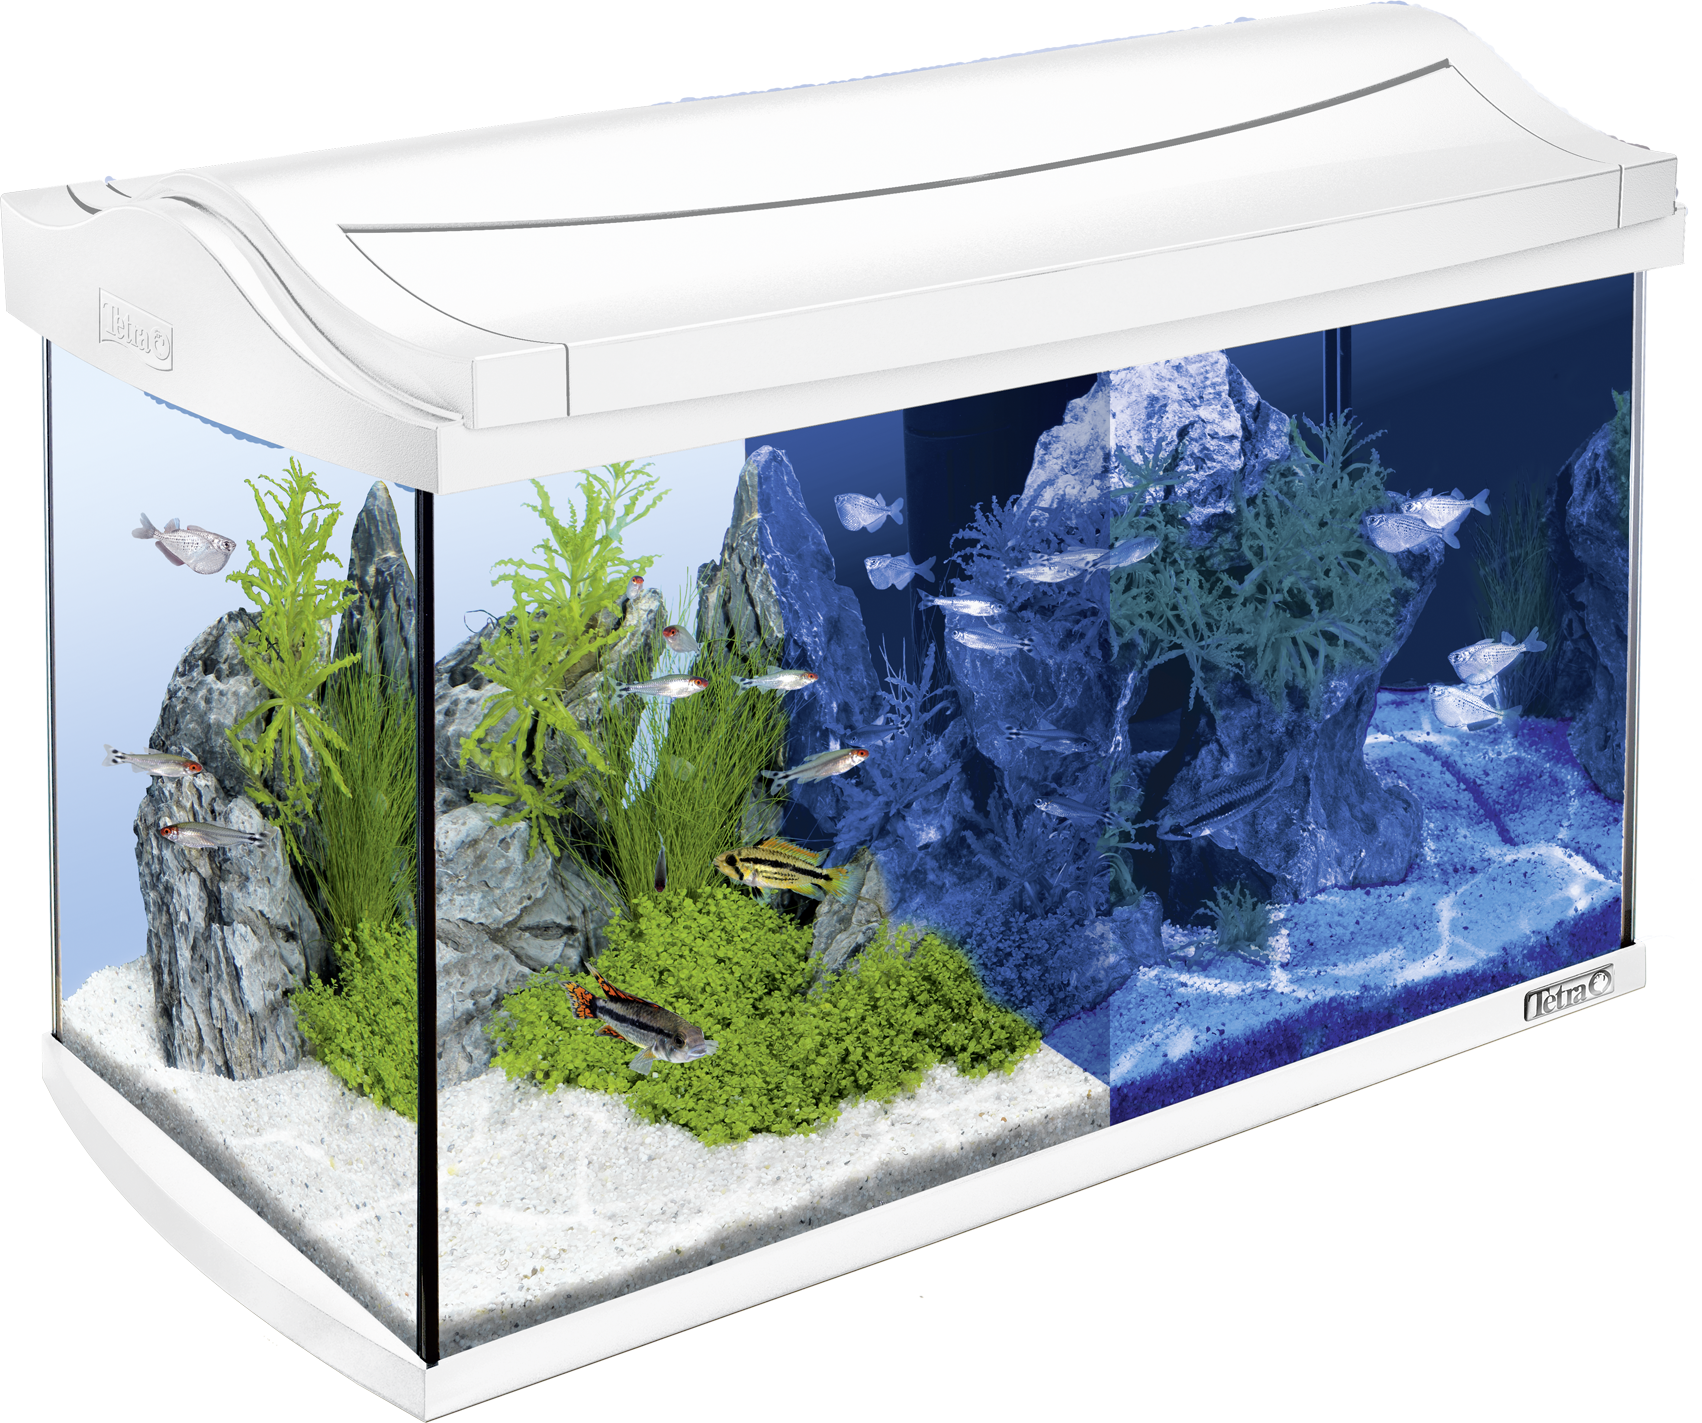 60l tetra aquaart led aquarium white. Black Bedroom Furniture Sets. Home Design Ideas